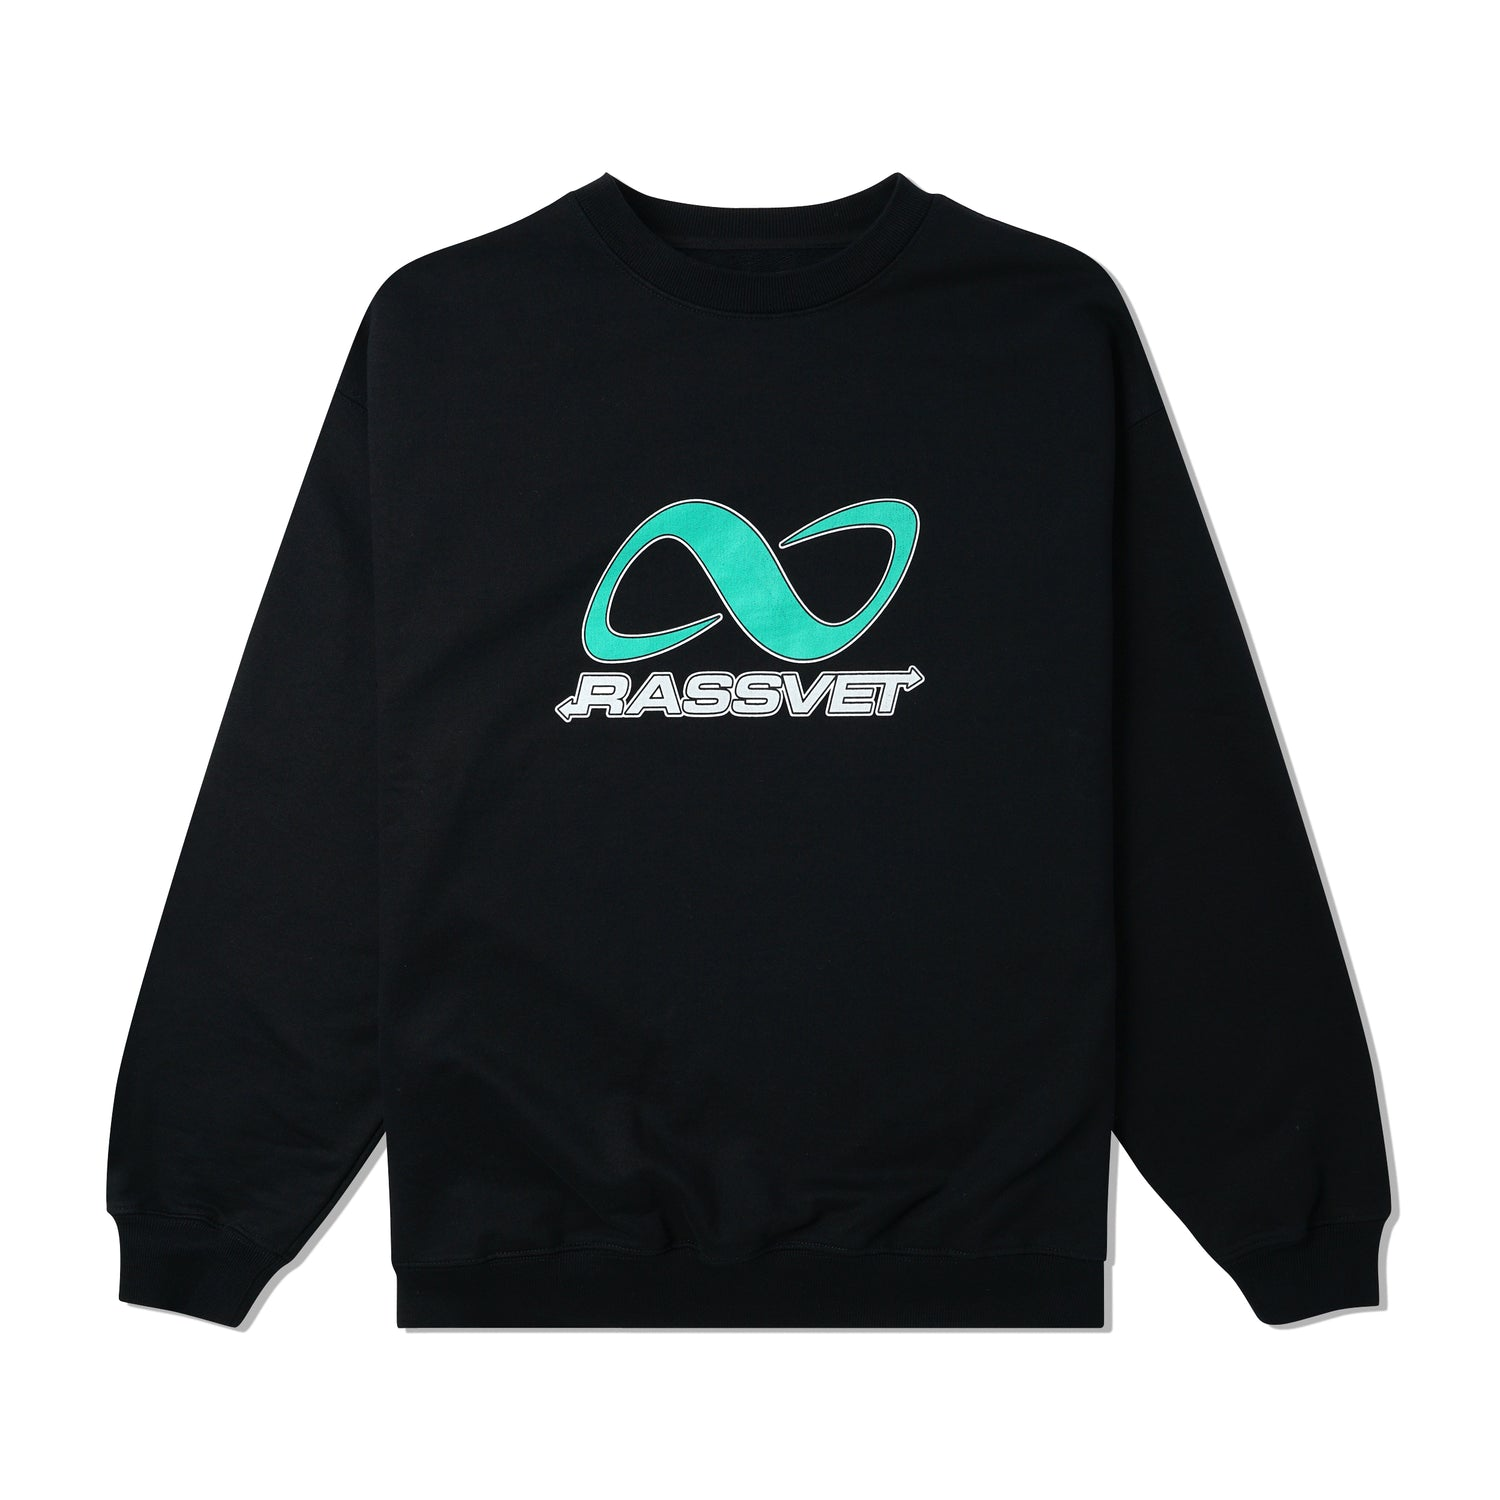 Logo Printed Crewneck, Black